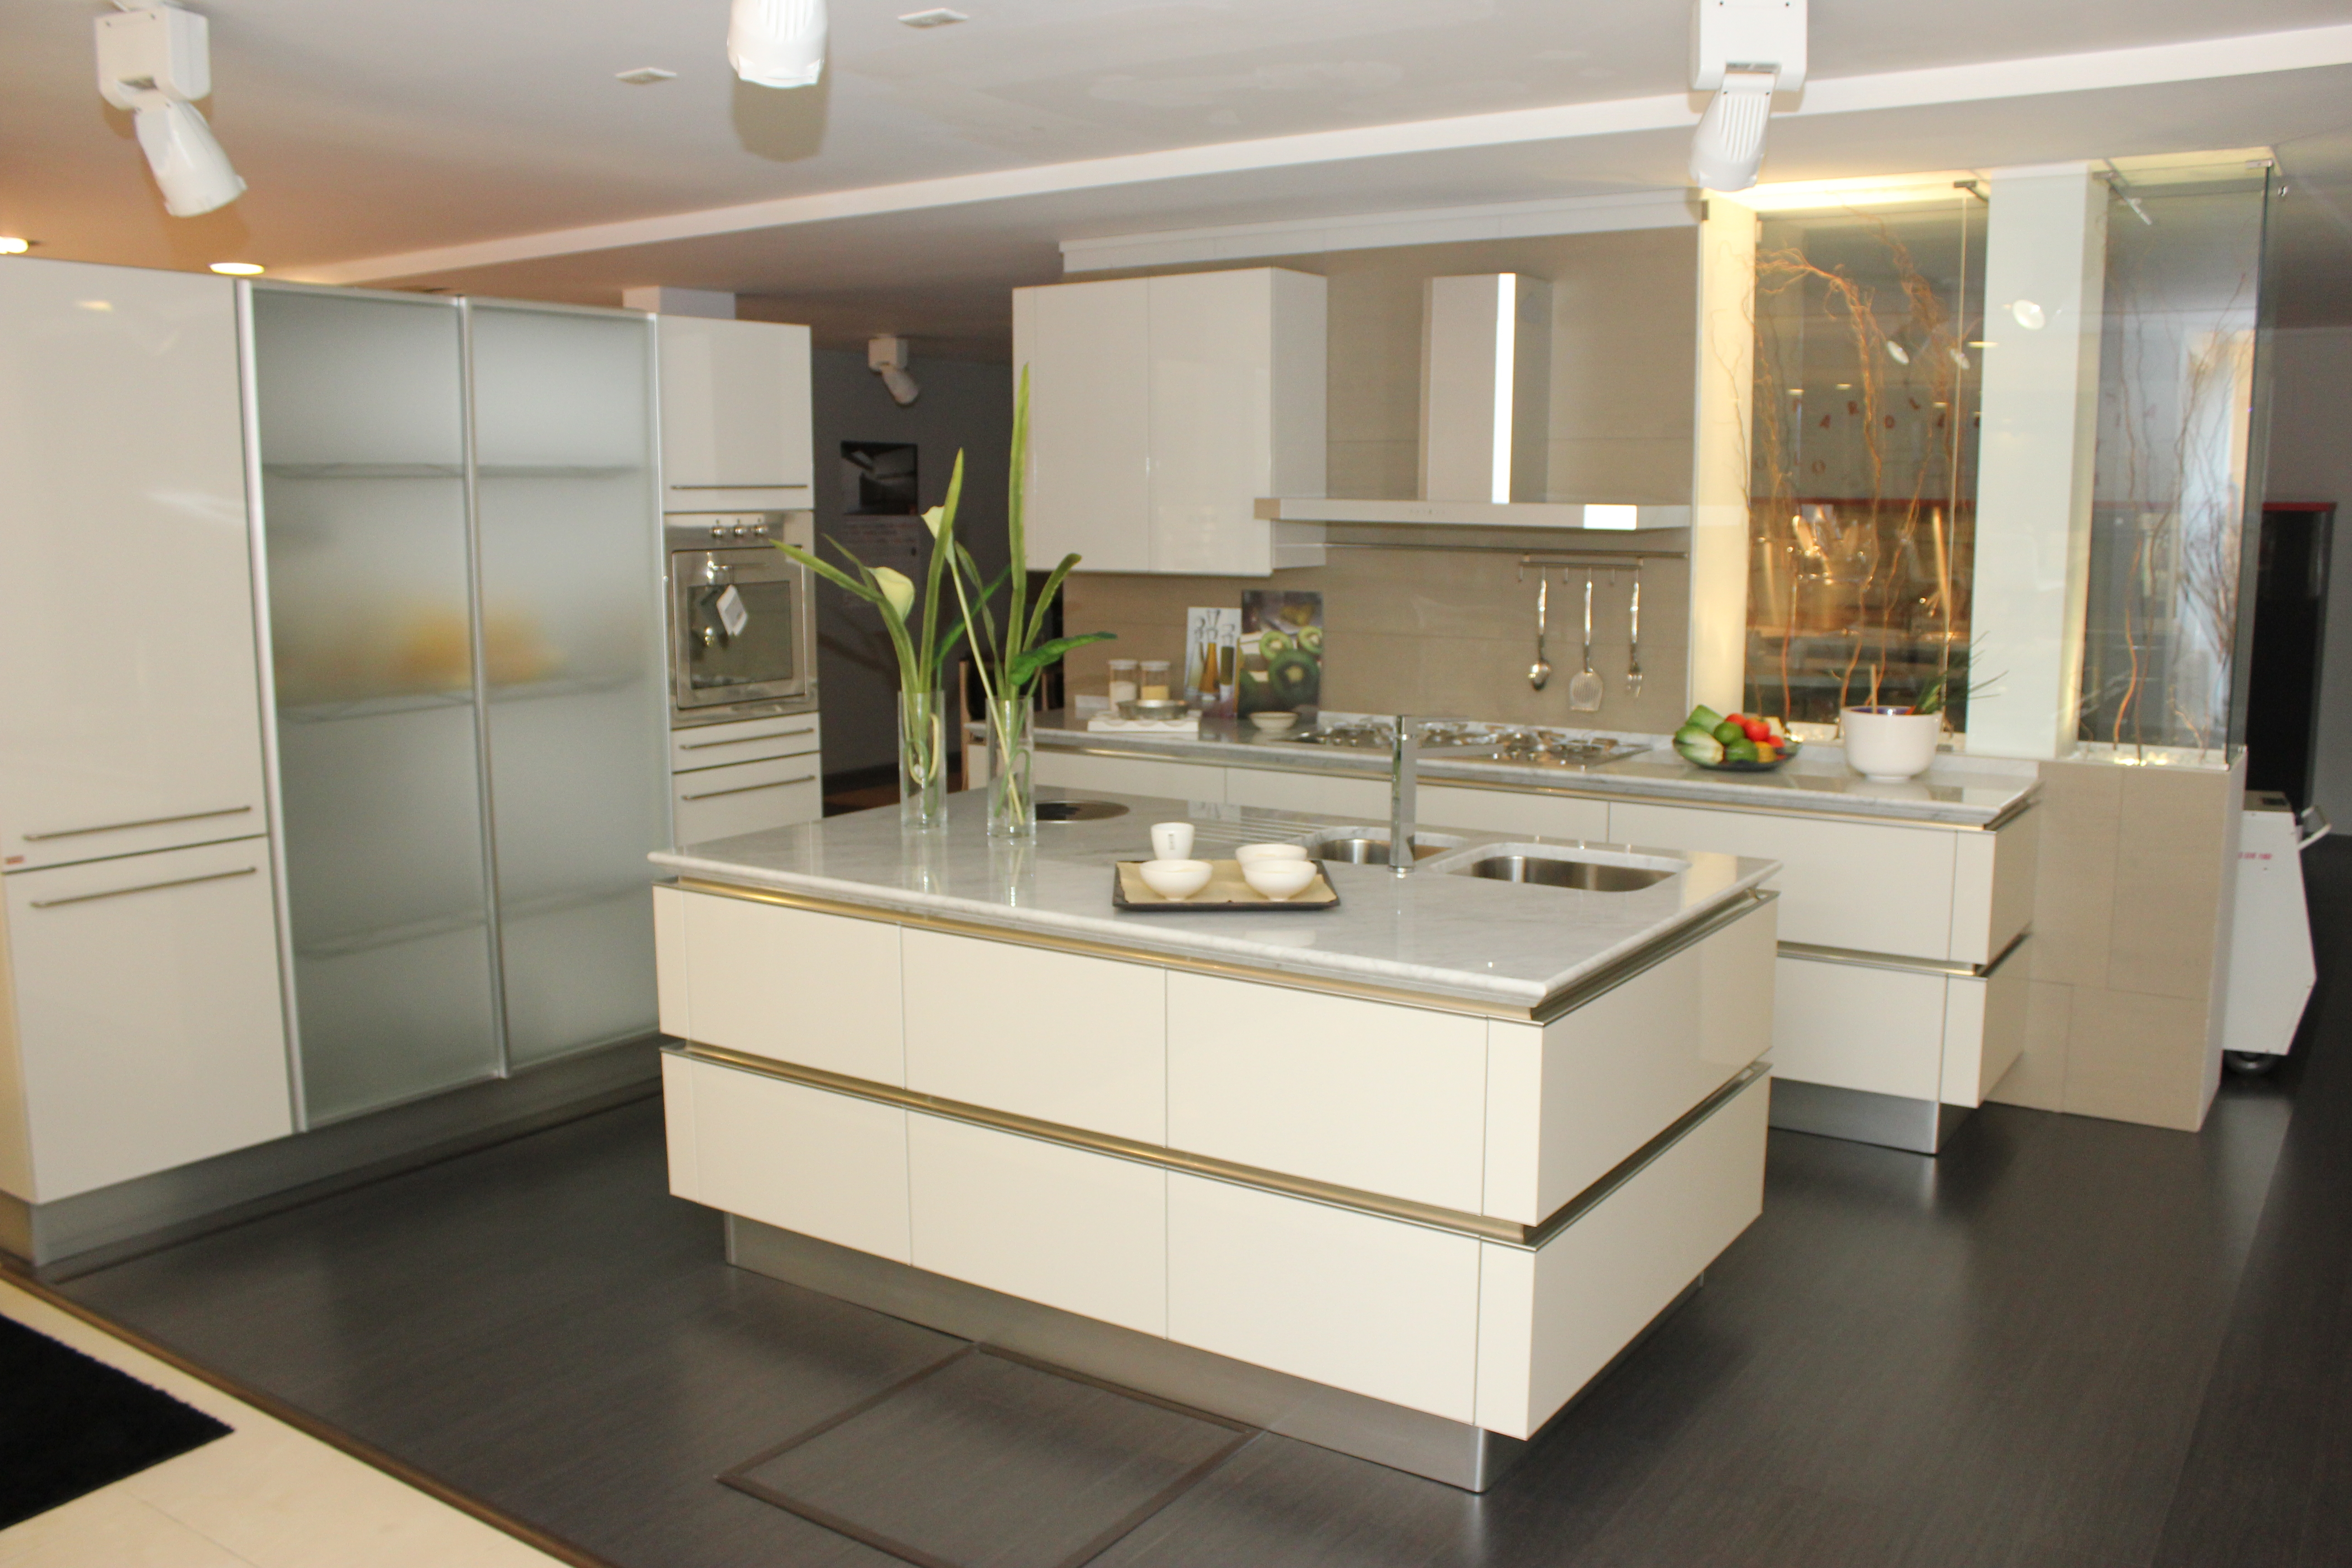 Awesome Costo Cucina Snaidero Pictures - Skilifts.us - skilifts.us